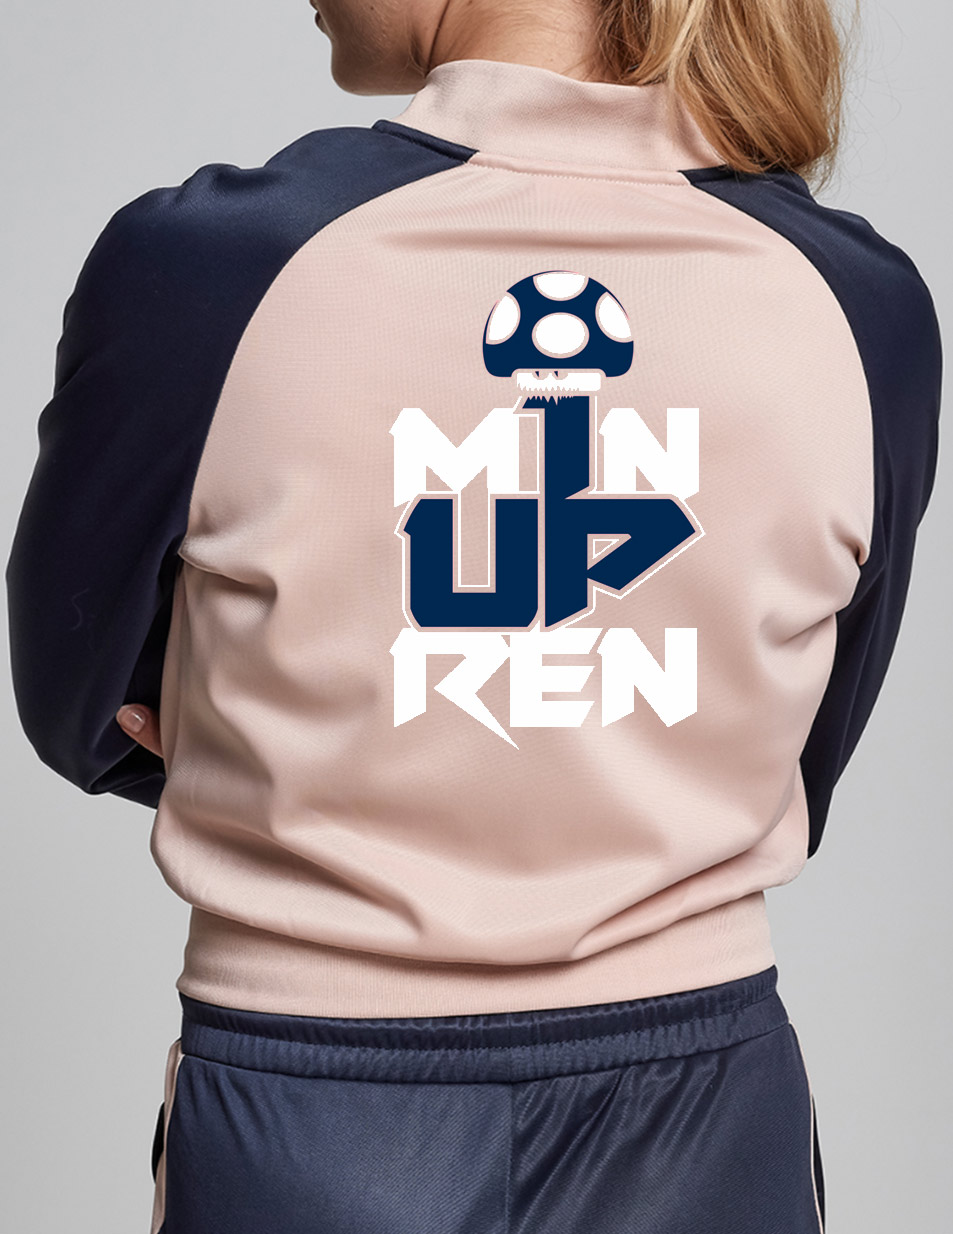 1upren Girly Jacke